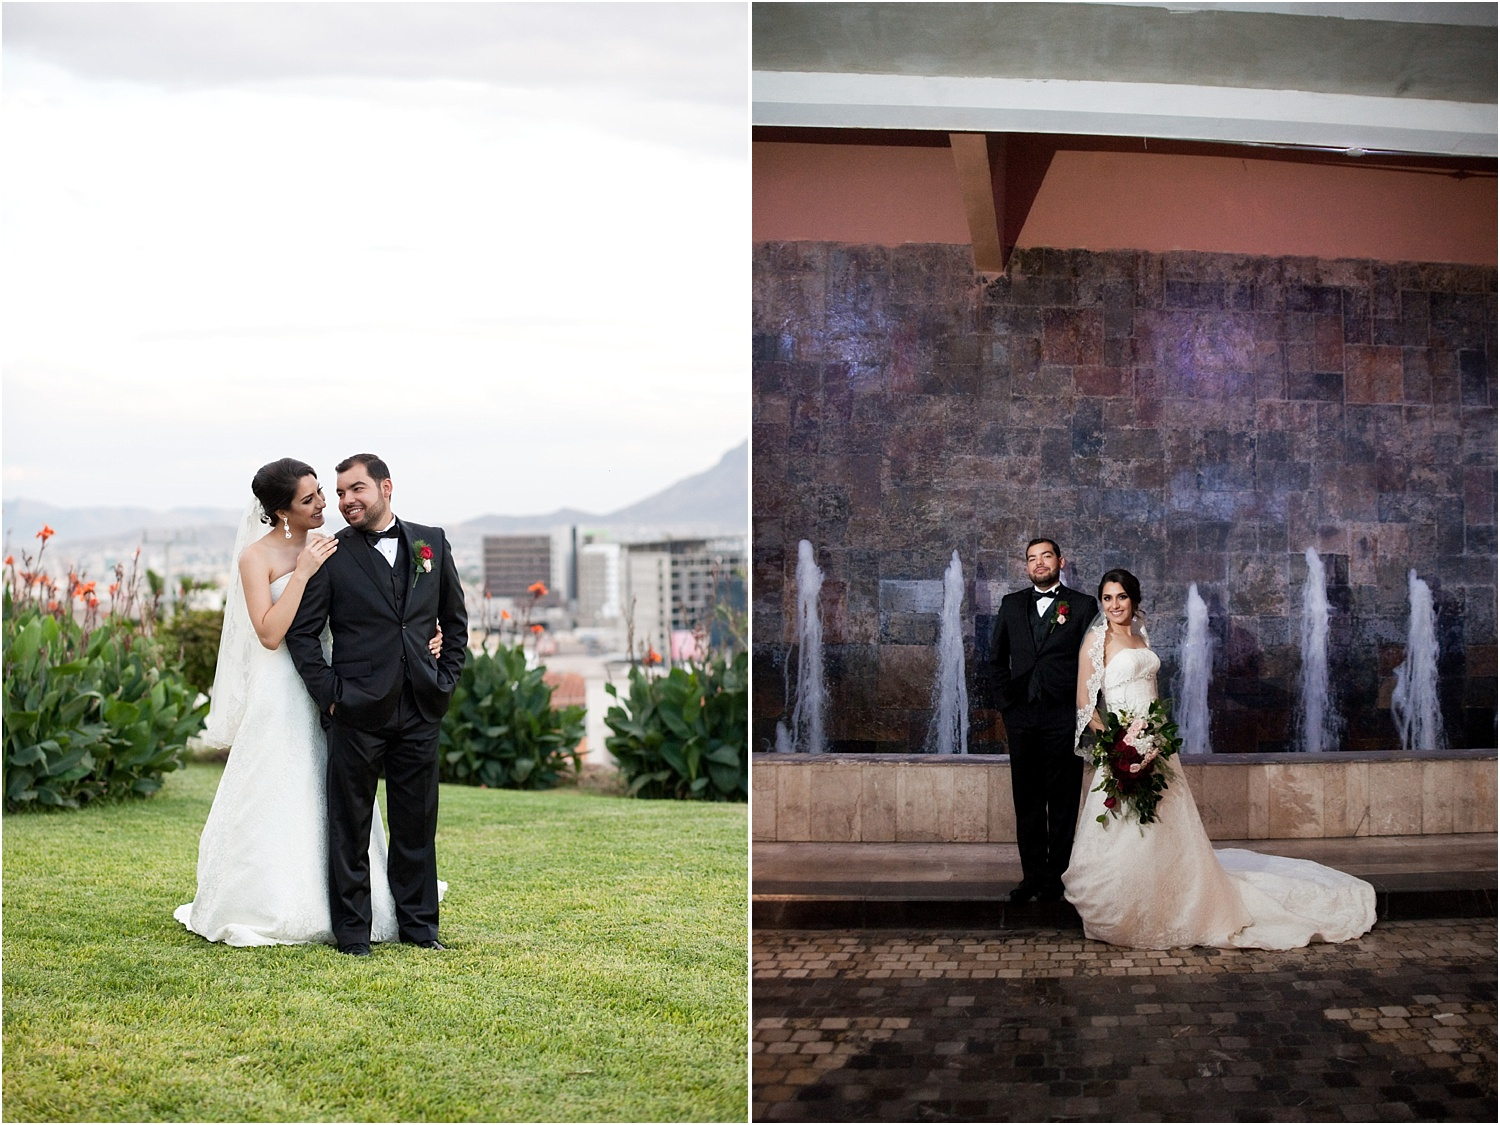 How to Create a Wedding Day Photography Timeline 1